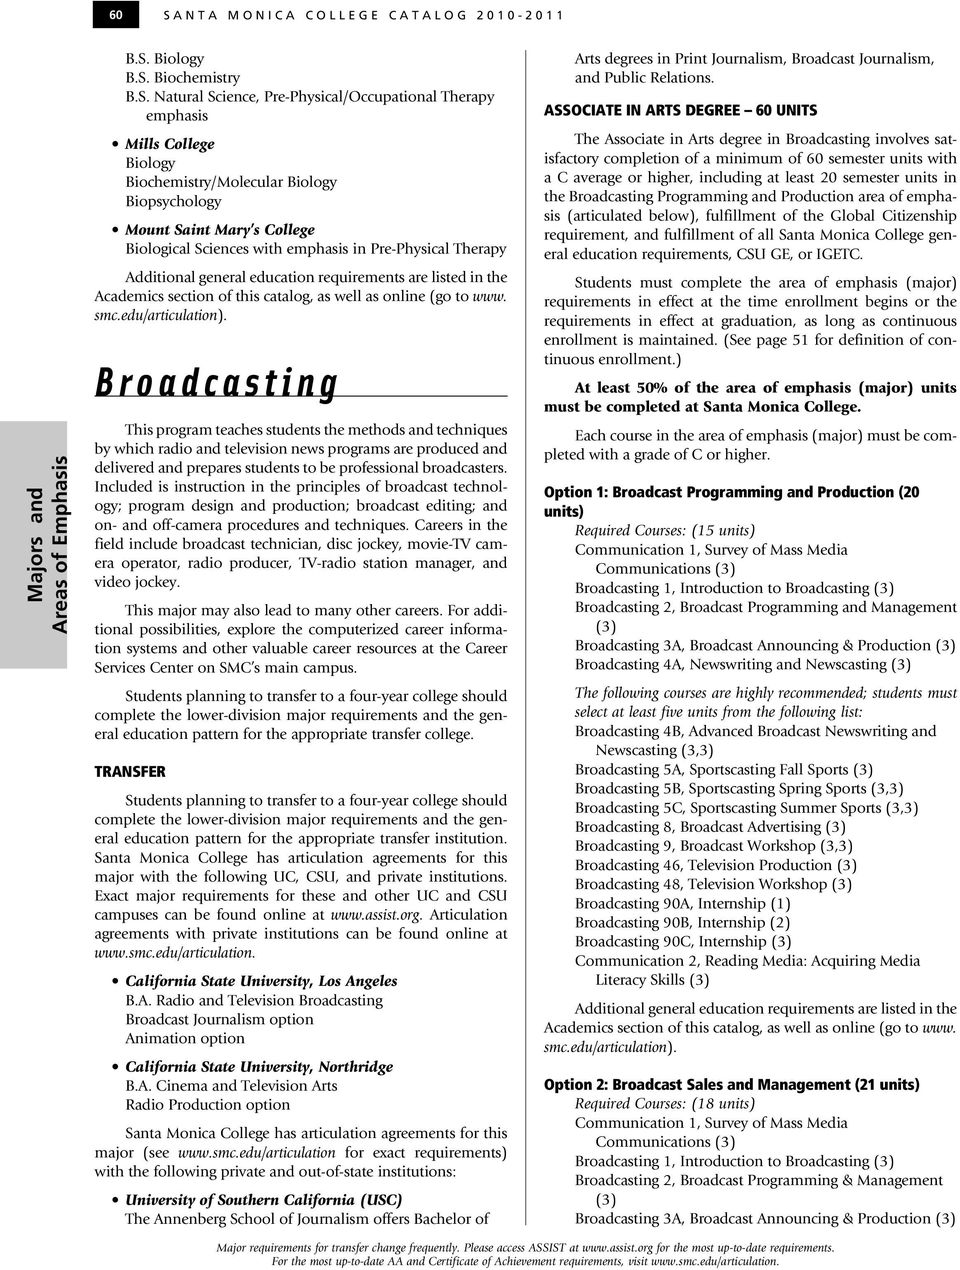 section of this catalog, as well as online (go to www. smc.edu/articulation).